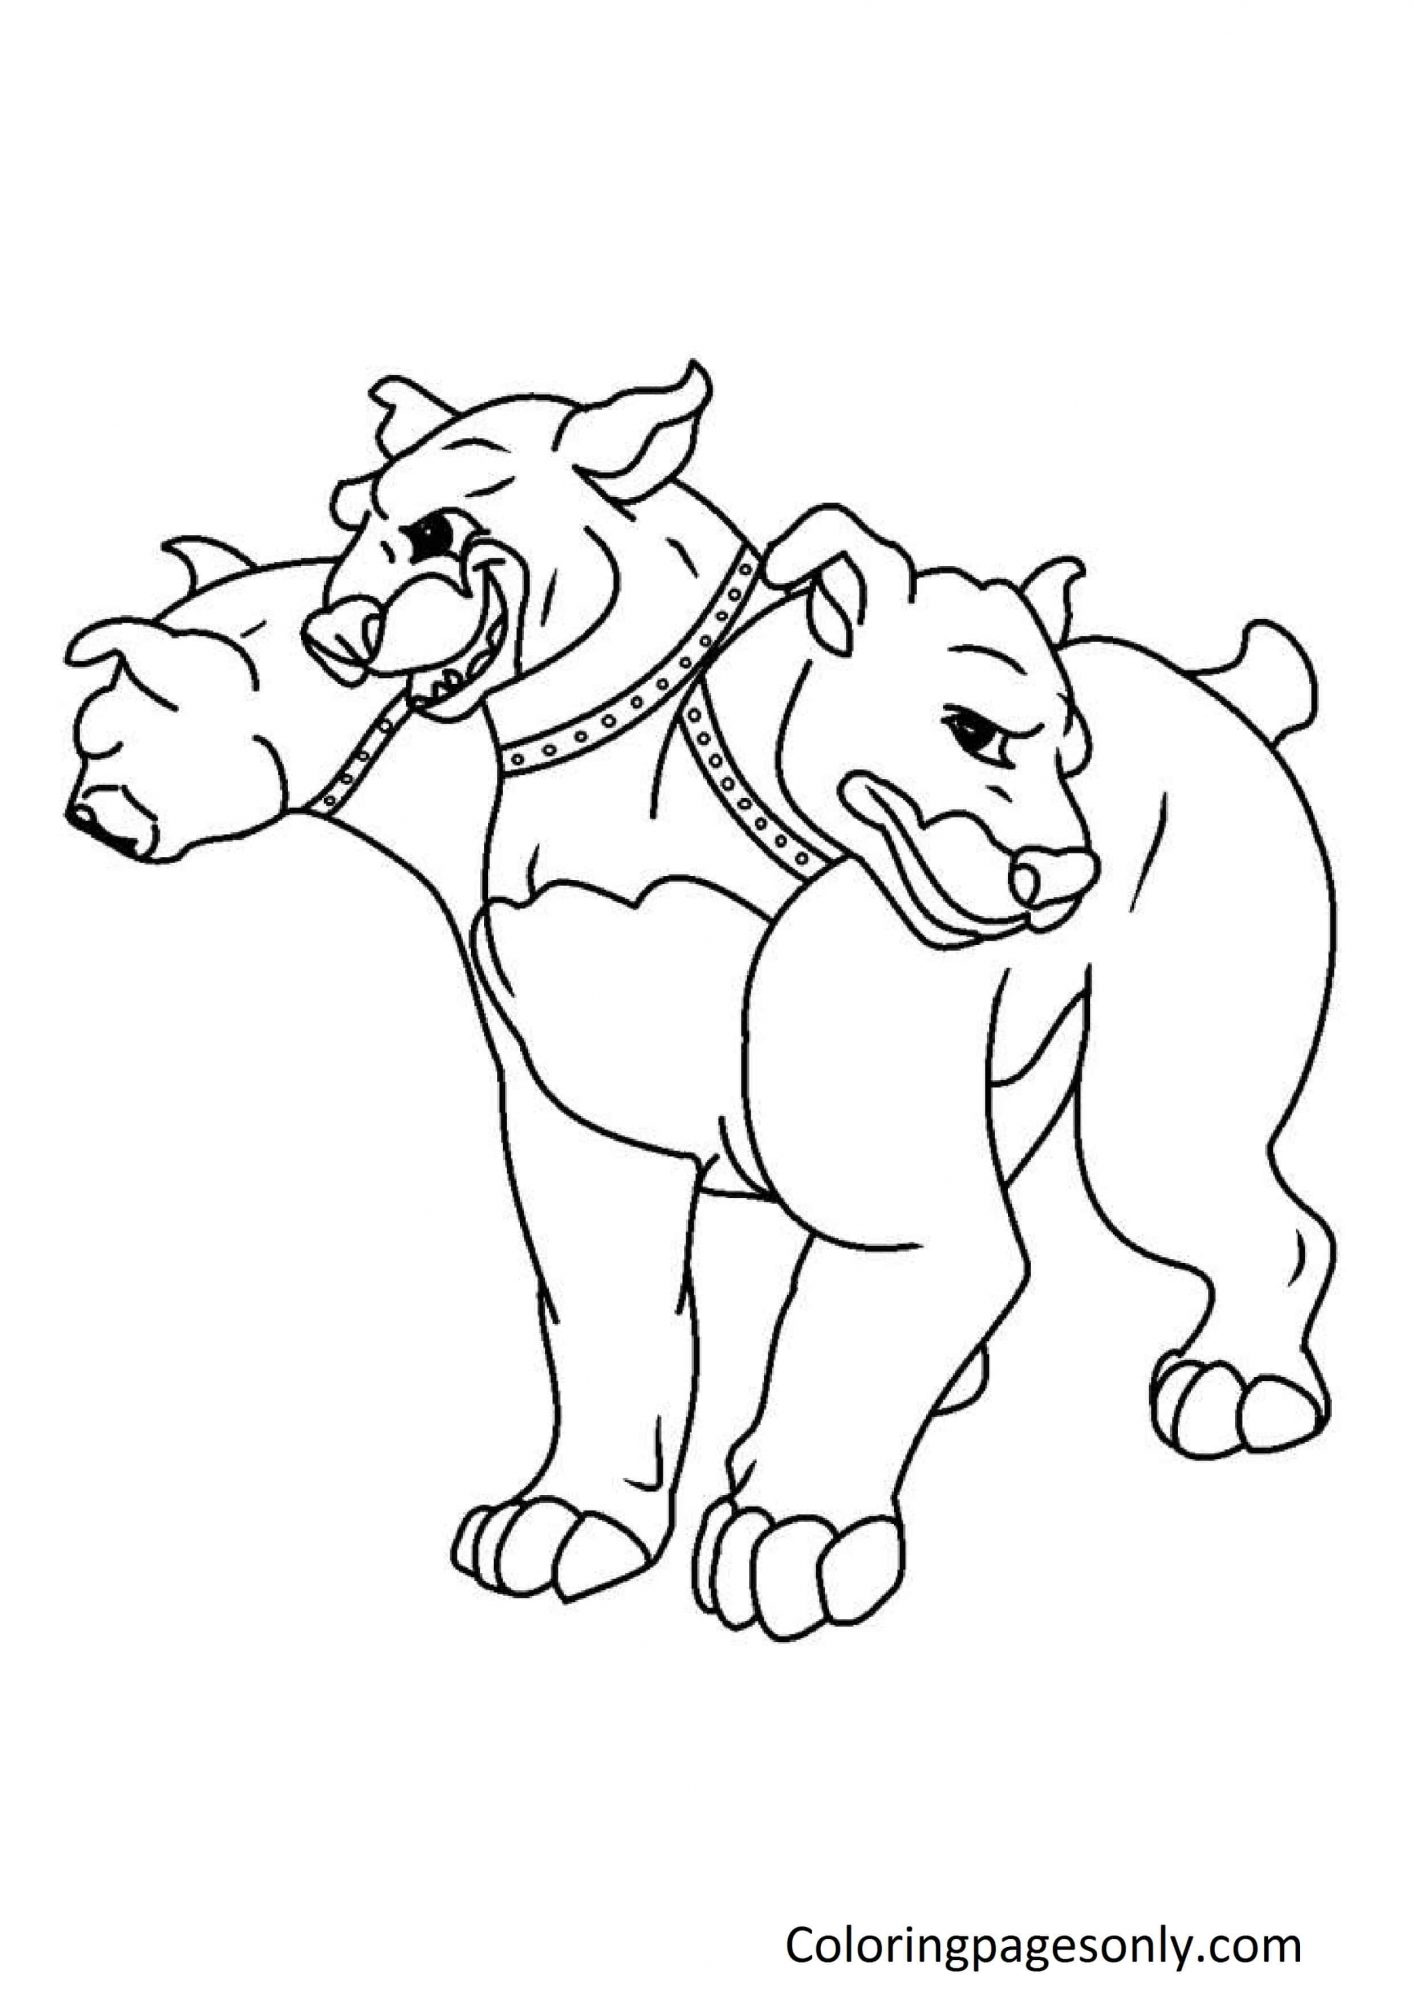 3 Headed Dog from Harry Potter Coloring Page